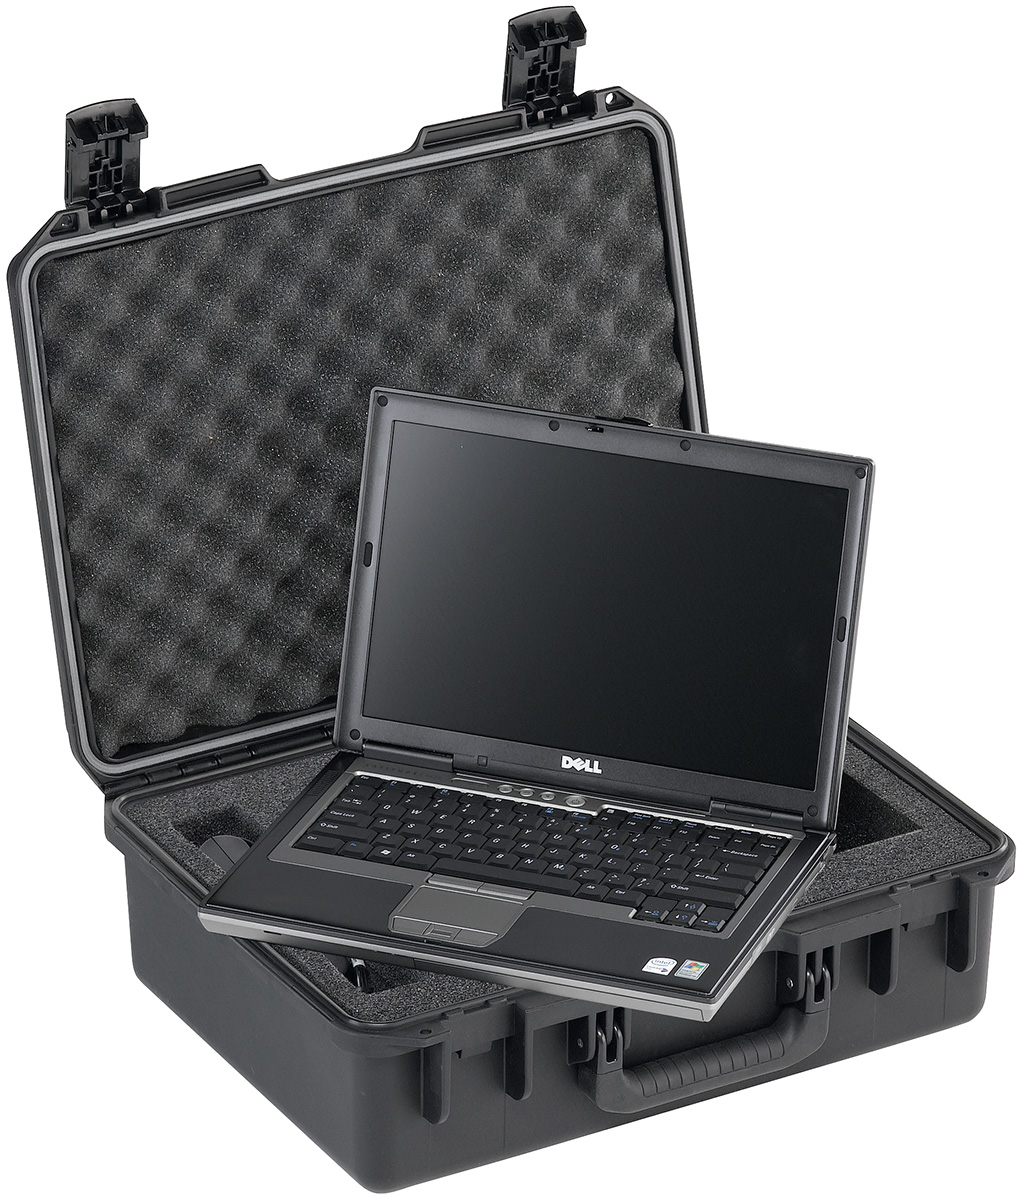 pelican peli products 472 D630 LAPTOP military army laptop hardcase